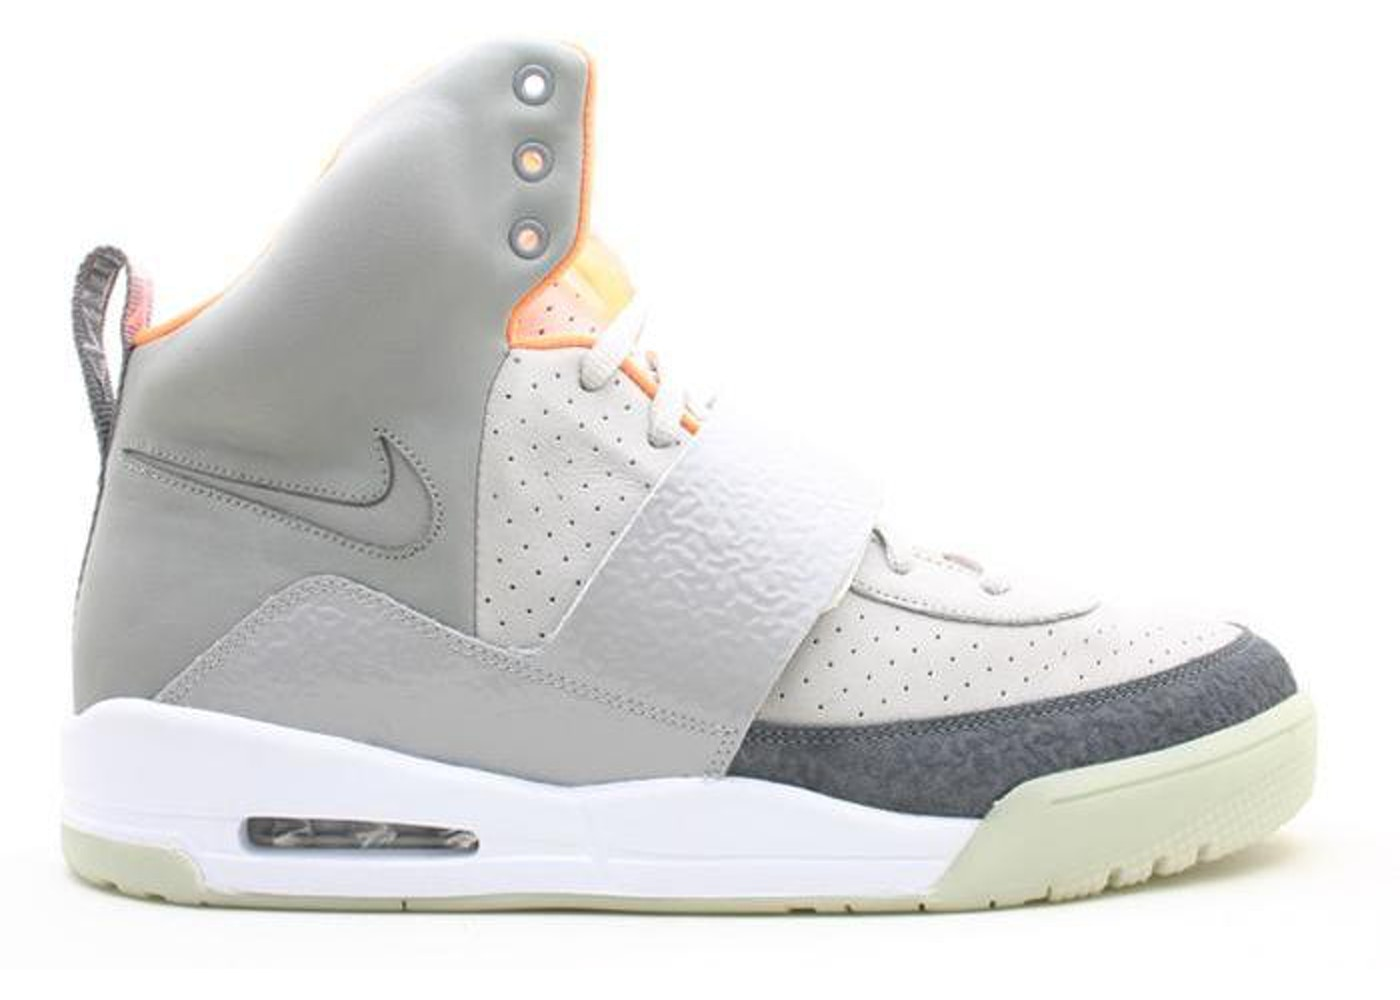 first rate dc03f 52e81 Sell. or Ask. Size: 7.5. View All Bids. Air Yeezy 1 ...